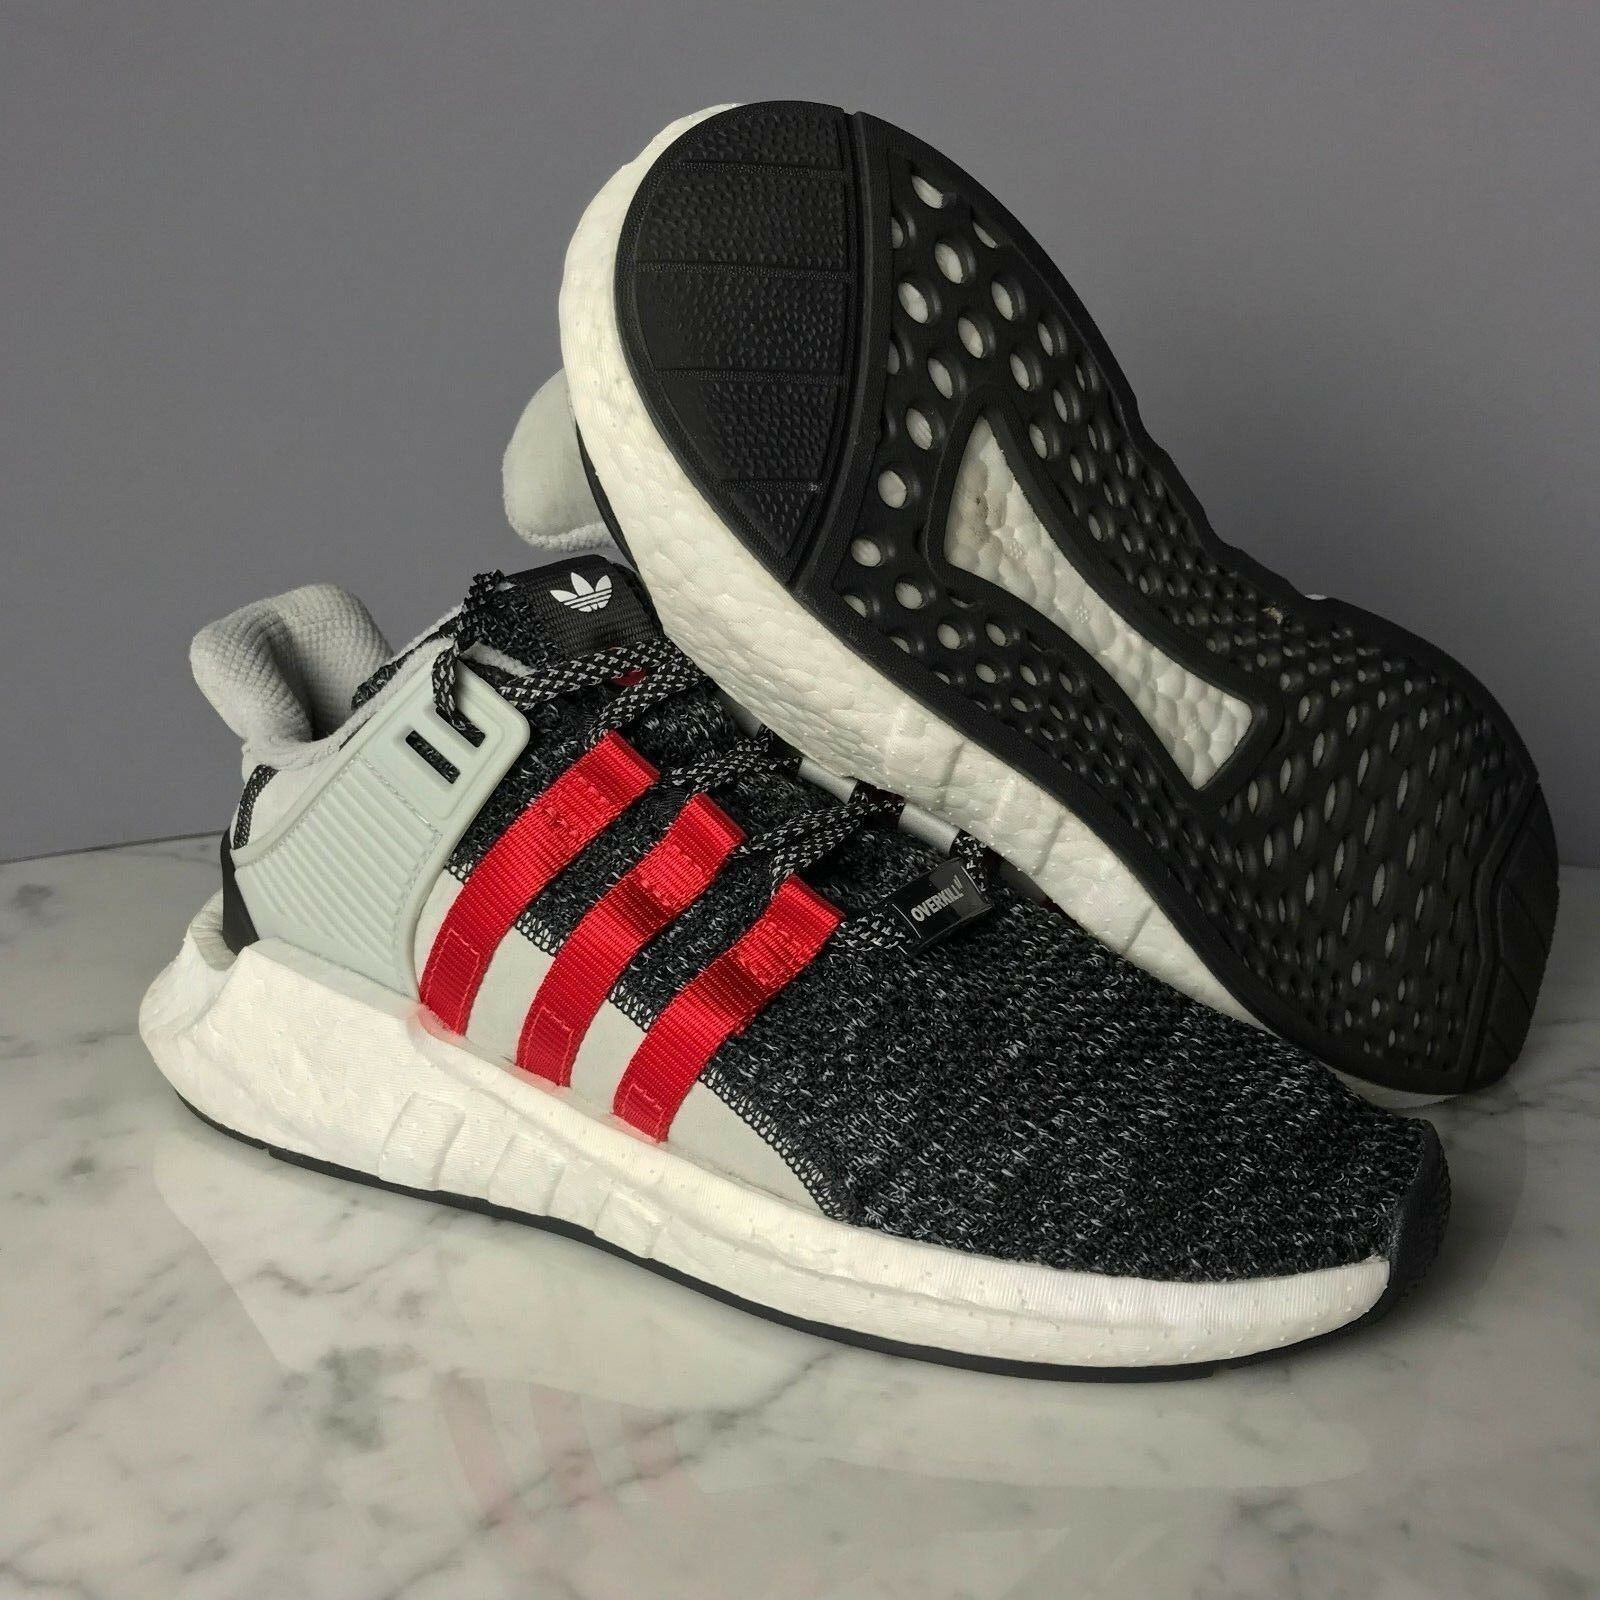 Adidas OVERKILL x EQT SUPPORT FUTURE - BLACK GREY RED - BY2913